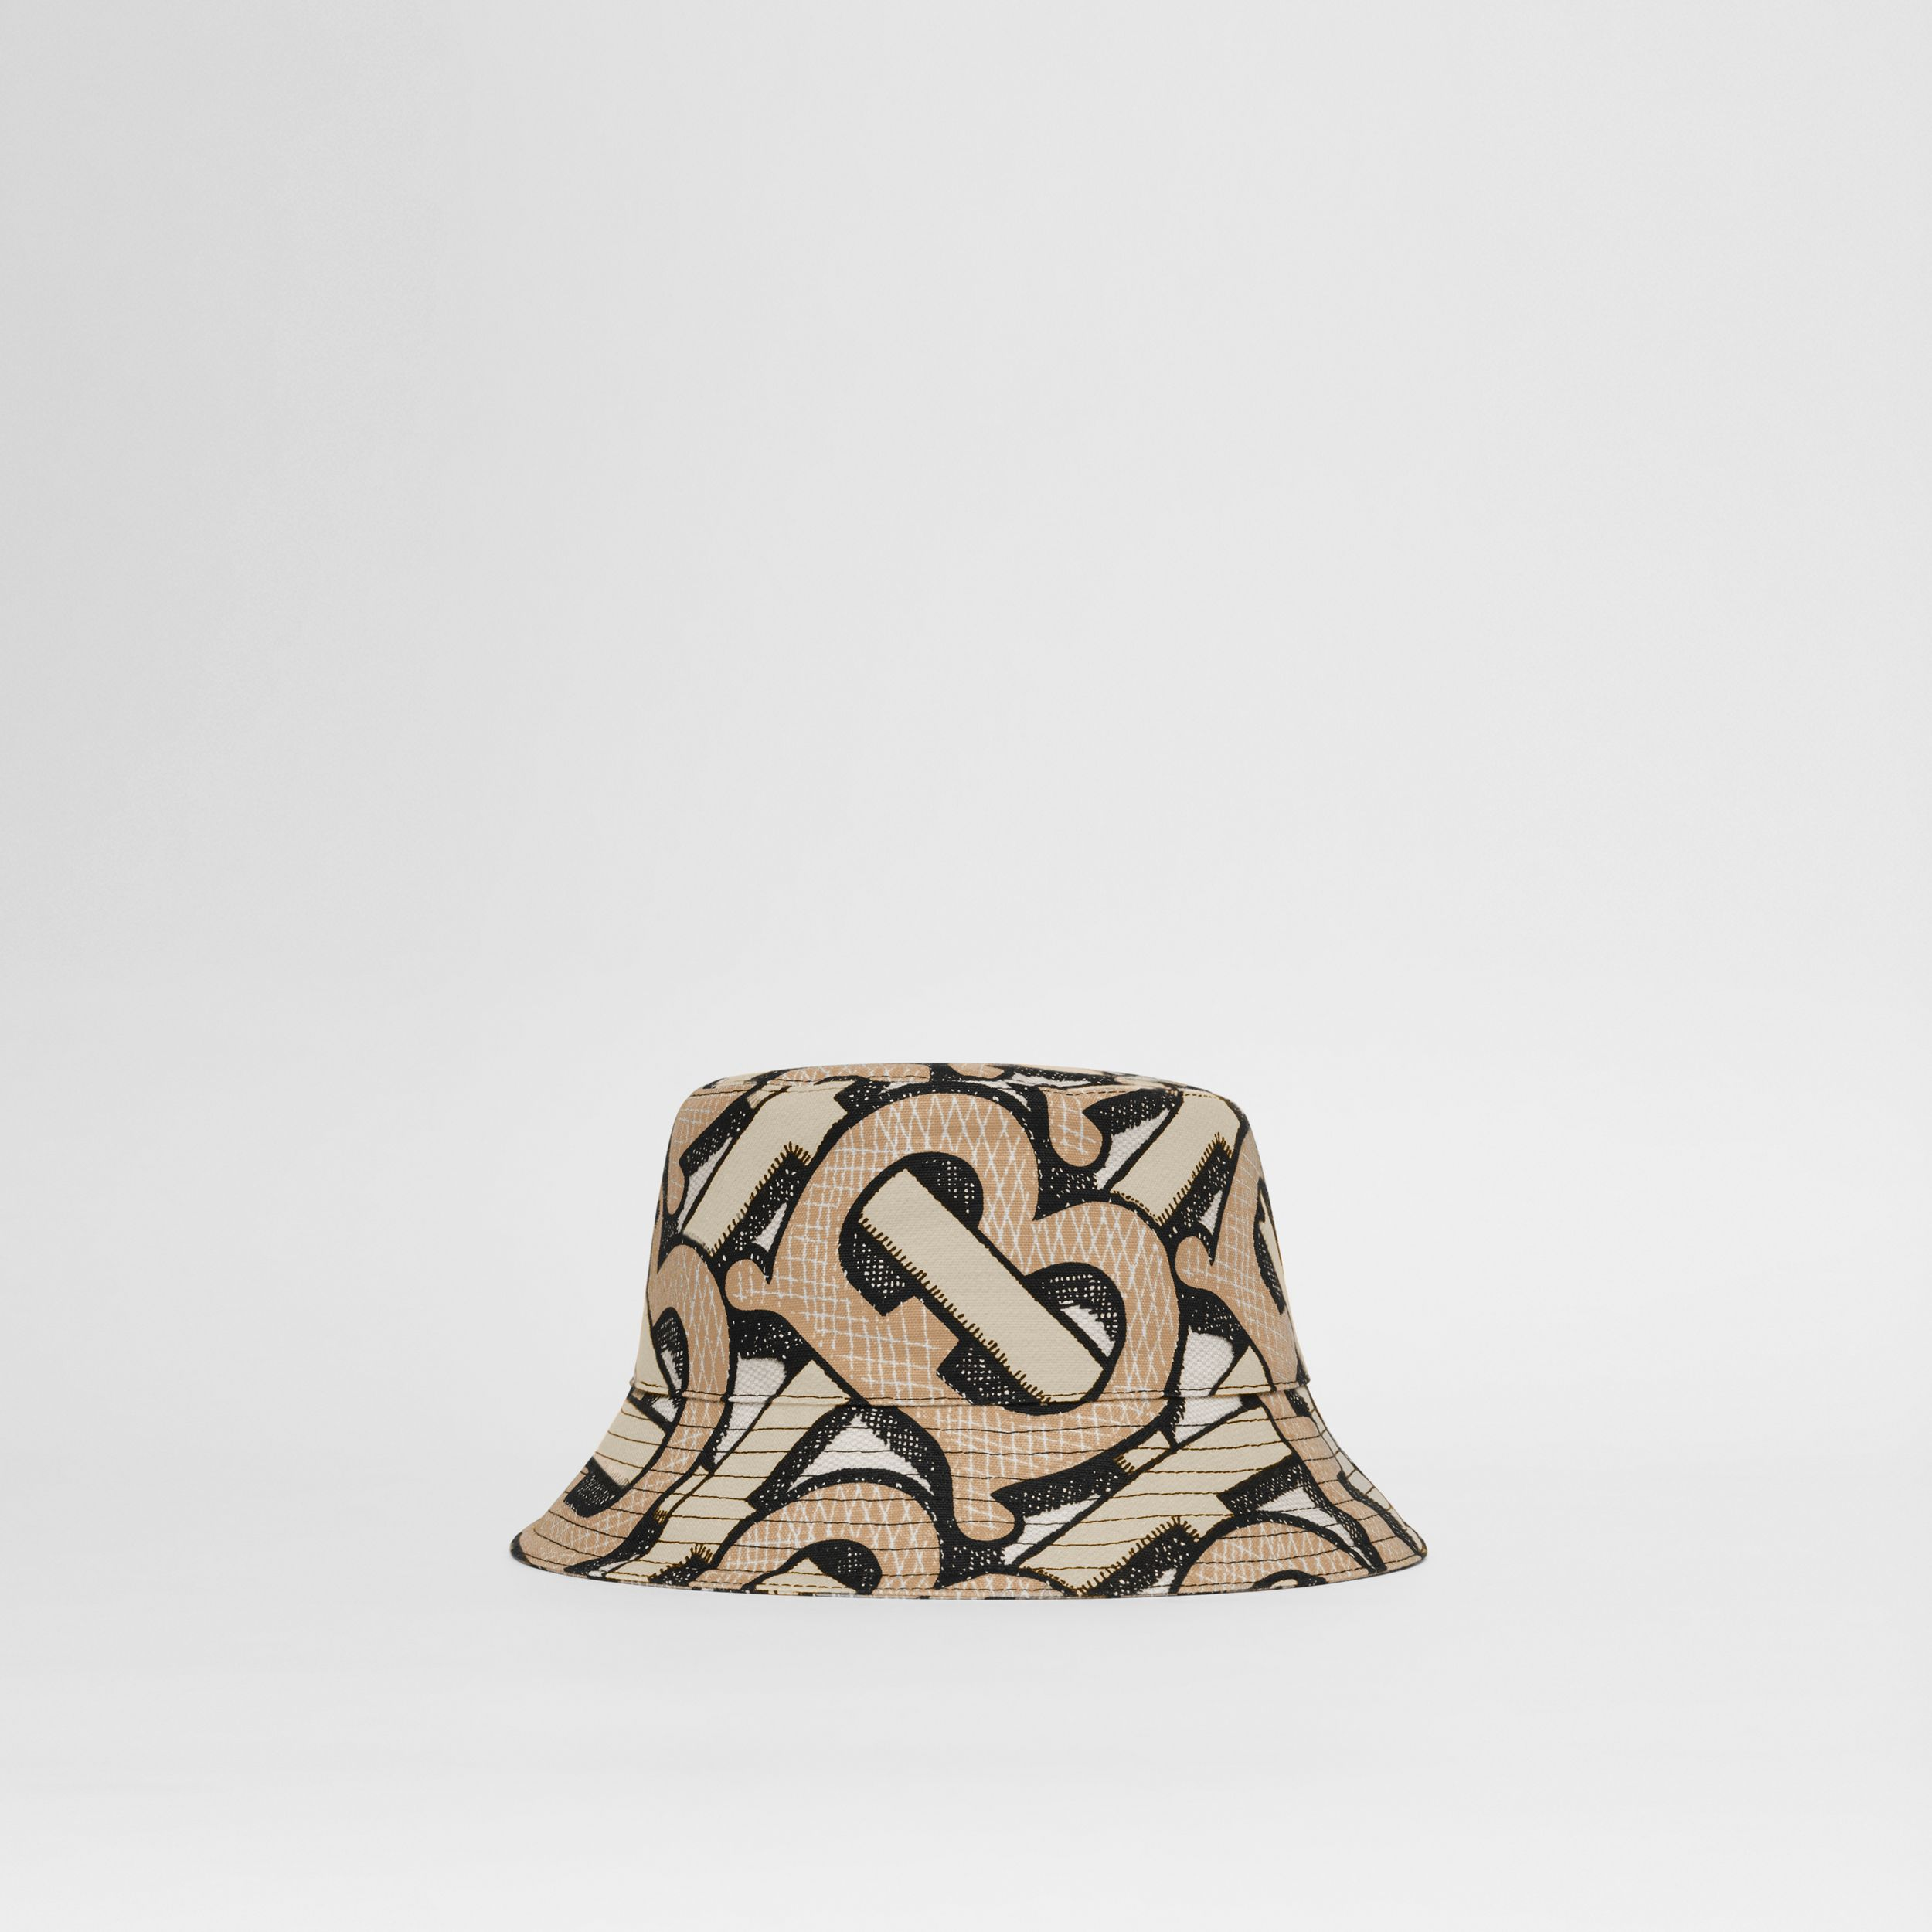 Monogram Print Cotton Canvas Bucket Hat in Dark Beige | Burberry - 1